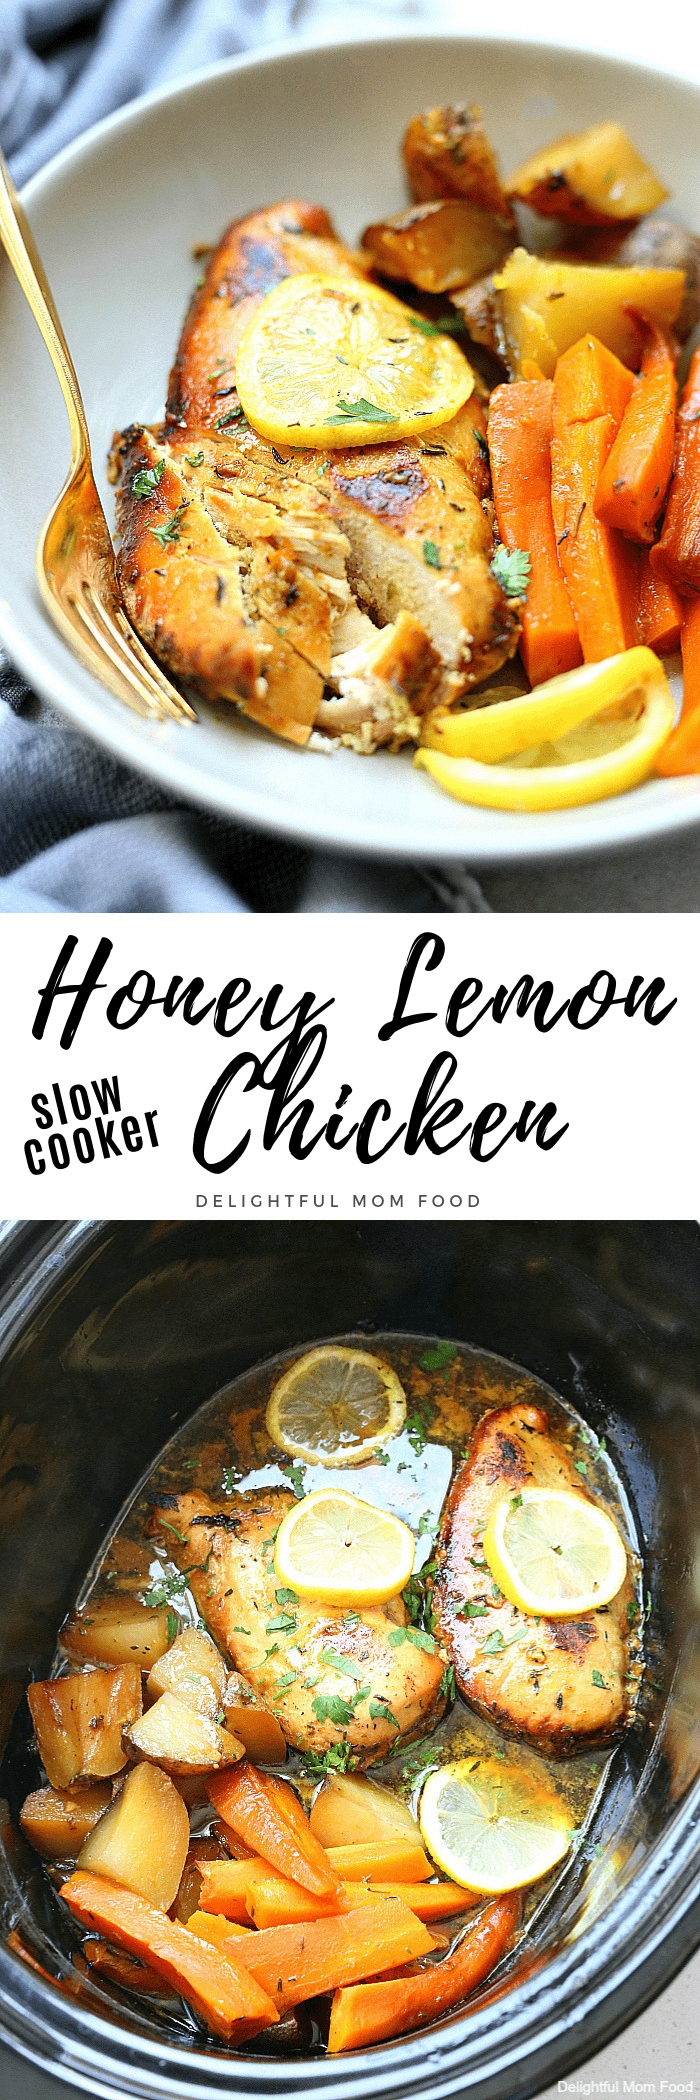 Zesty honey lemon chicken slowly cooked in the slow cooker frees up cooking space and valuable time! The chicken is infused with a marinade of turmeric, honey, lemon and oil creating a delicious meal with a slightly sweet side. #honey #lemon #chicken #recipe #glutenfree #healthy #crockpot #slowcooker | Delightful Mom Food